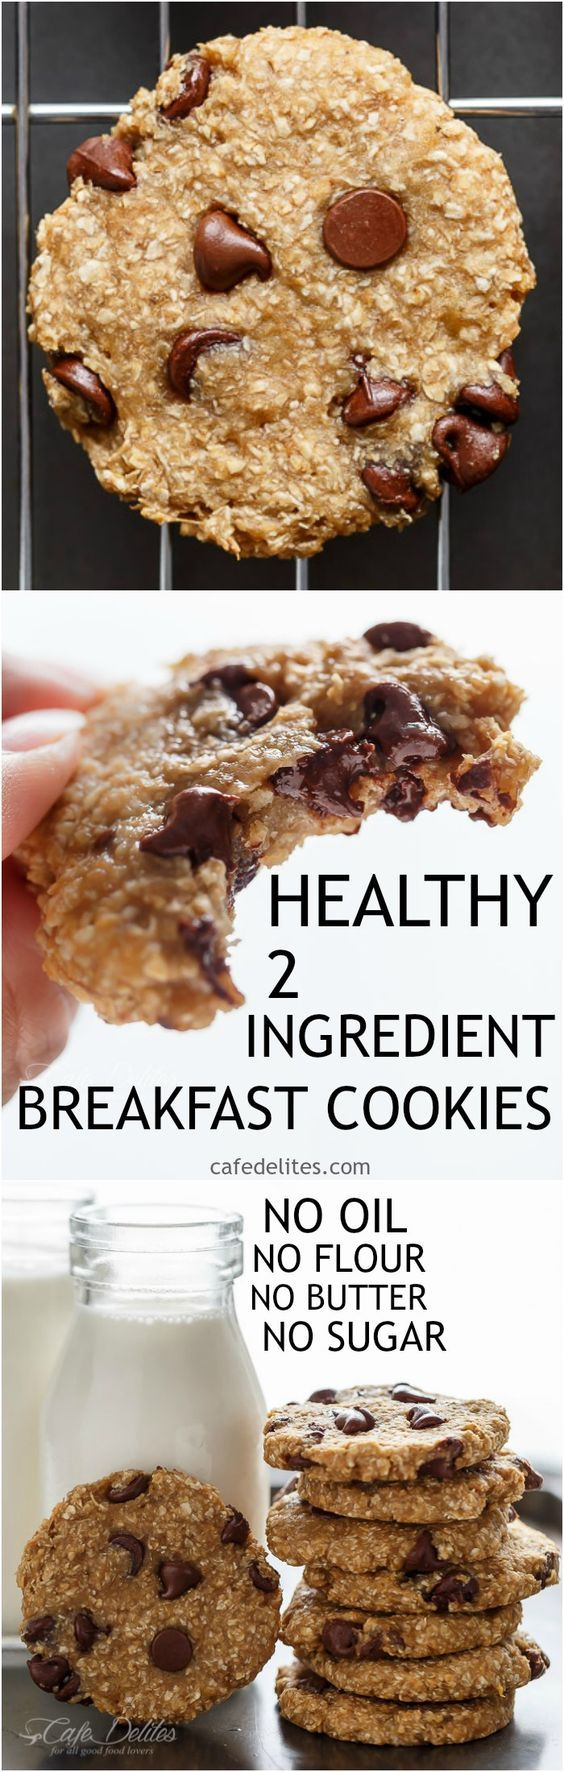 No flour. No oil. No refined sugars, Non fat. Weight Watchers friendly. Low calorie! These Healthy 2-Ingredient Breakfast Cookies are super easy to make!   http://cafedelites.com: